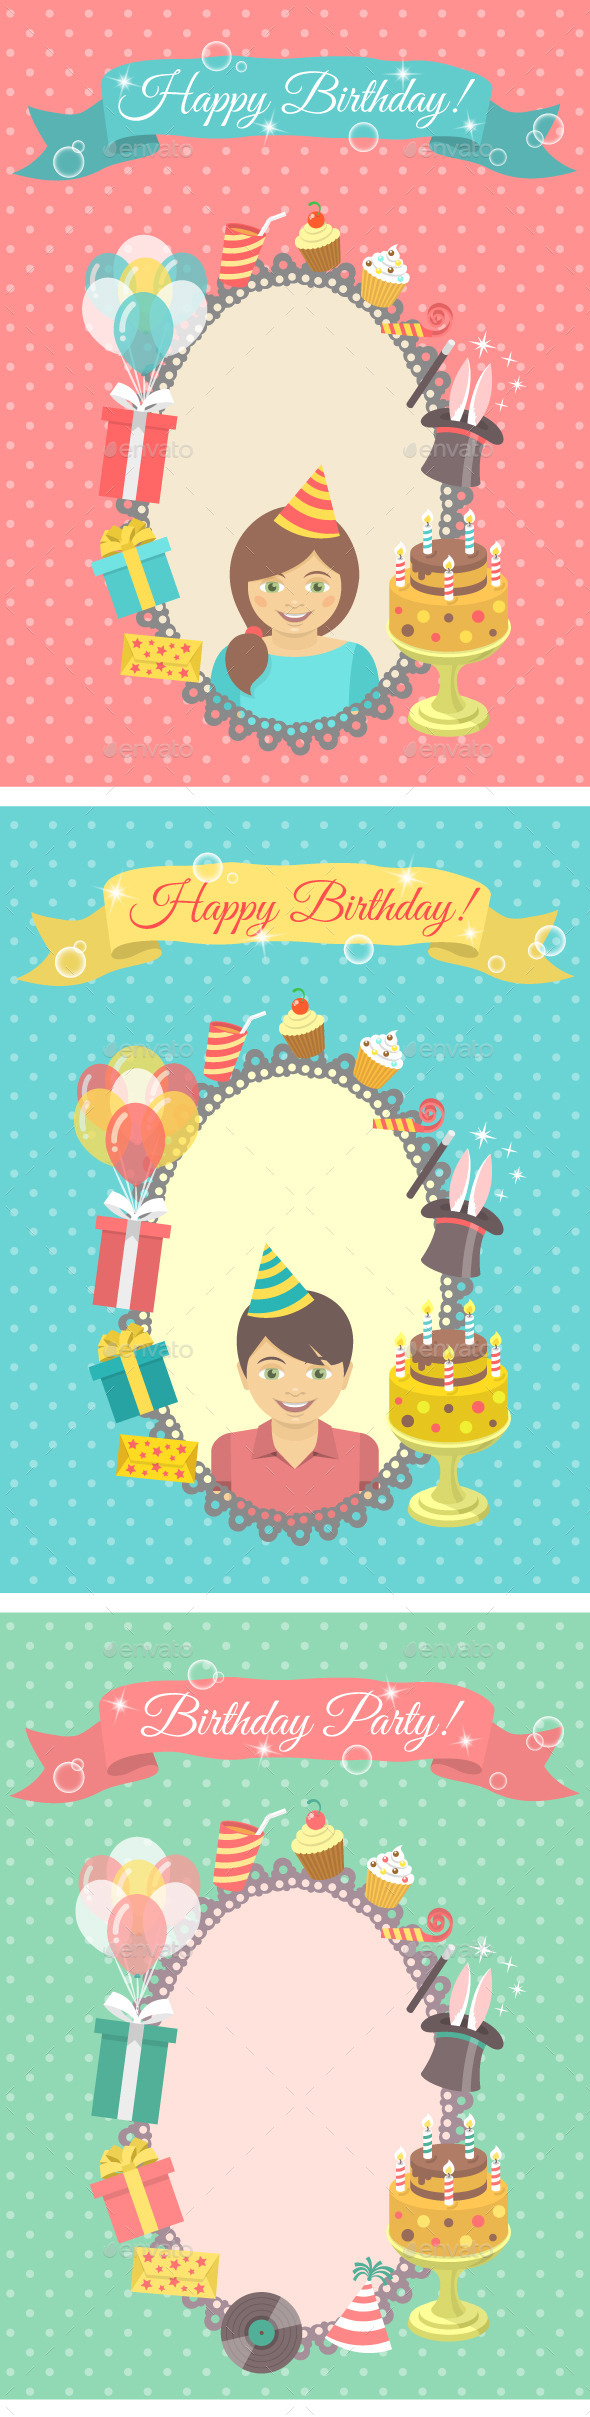 GraphicRiver Happy Birthday Cards Collection 9312947